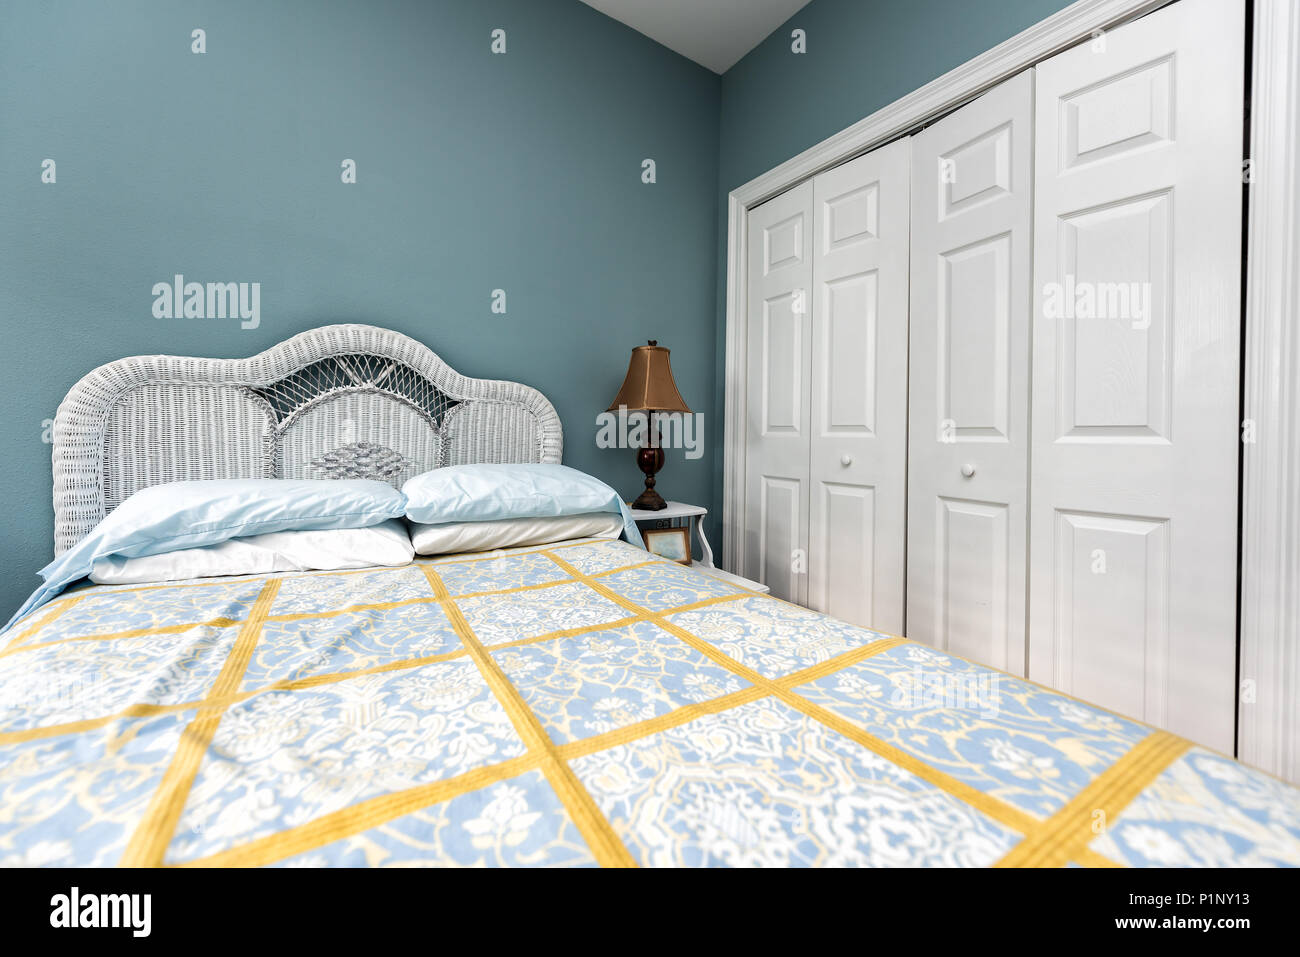 New Clean Bed Comforter With Headboard Table Lamp Vintage Beach Theme Decorative Blue Green Pillows In Bedroom In Staging Model Home House Or Apar Stock Photo Alamy